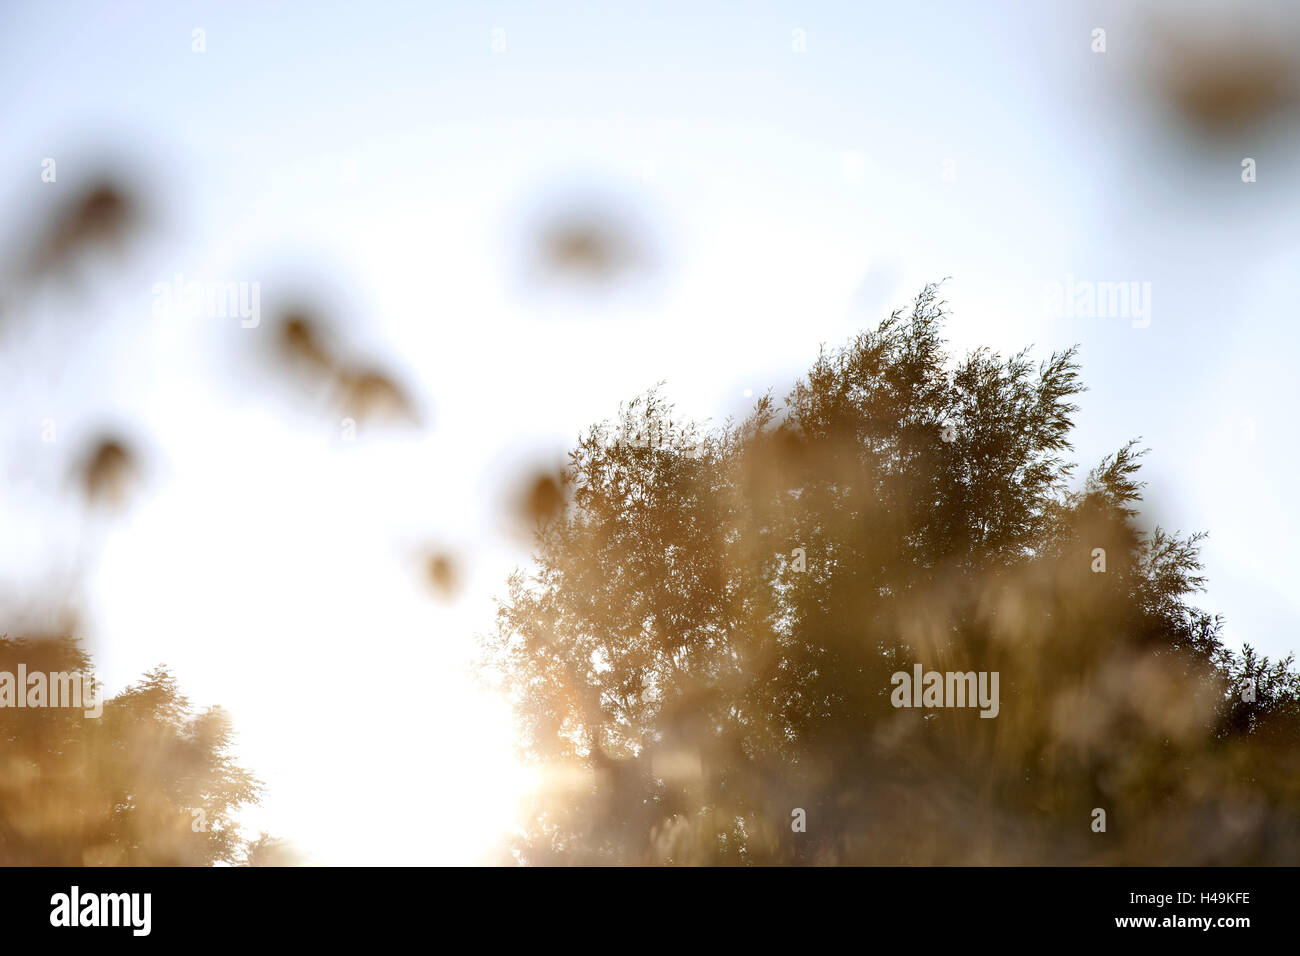 backlight, plants, blur, worm's eye view, - Stock Image